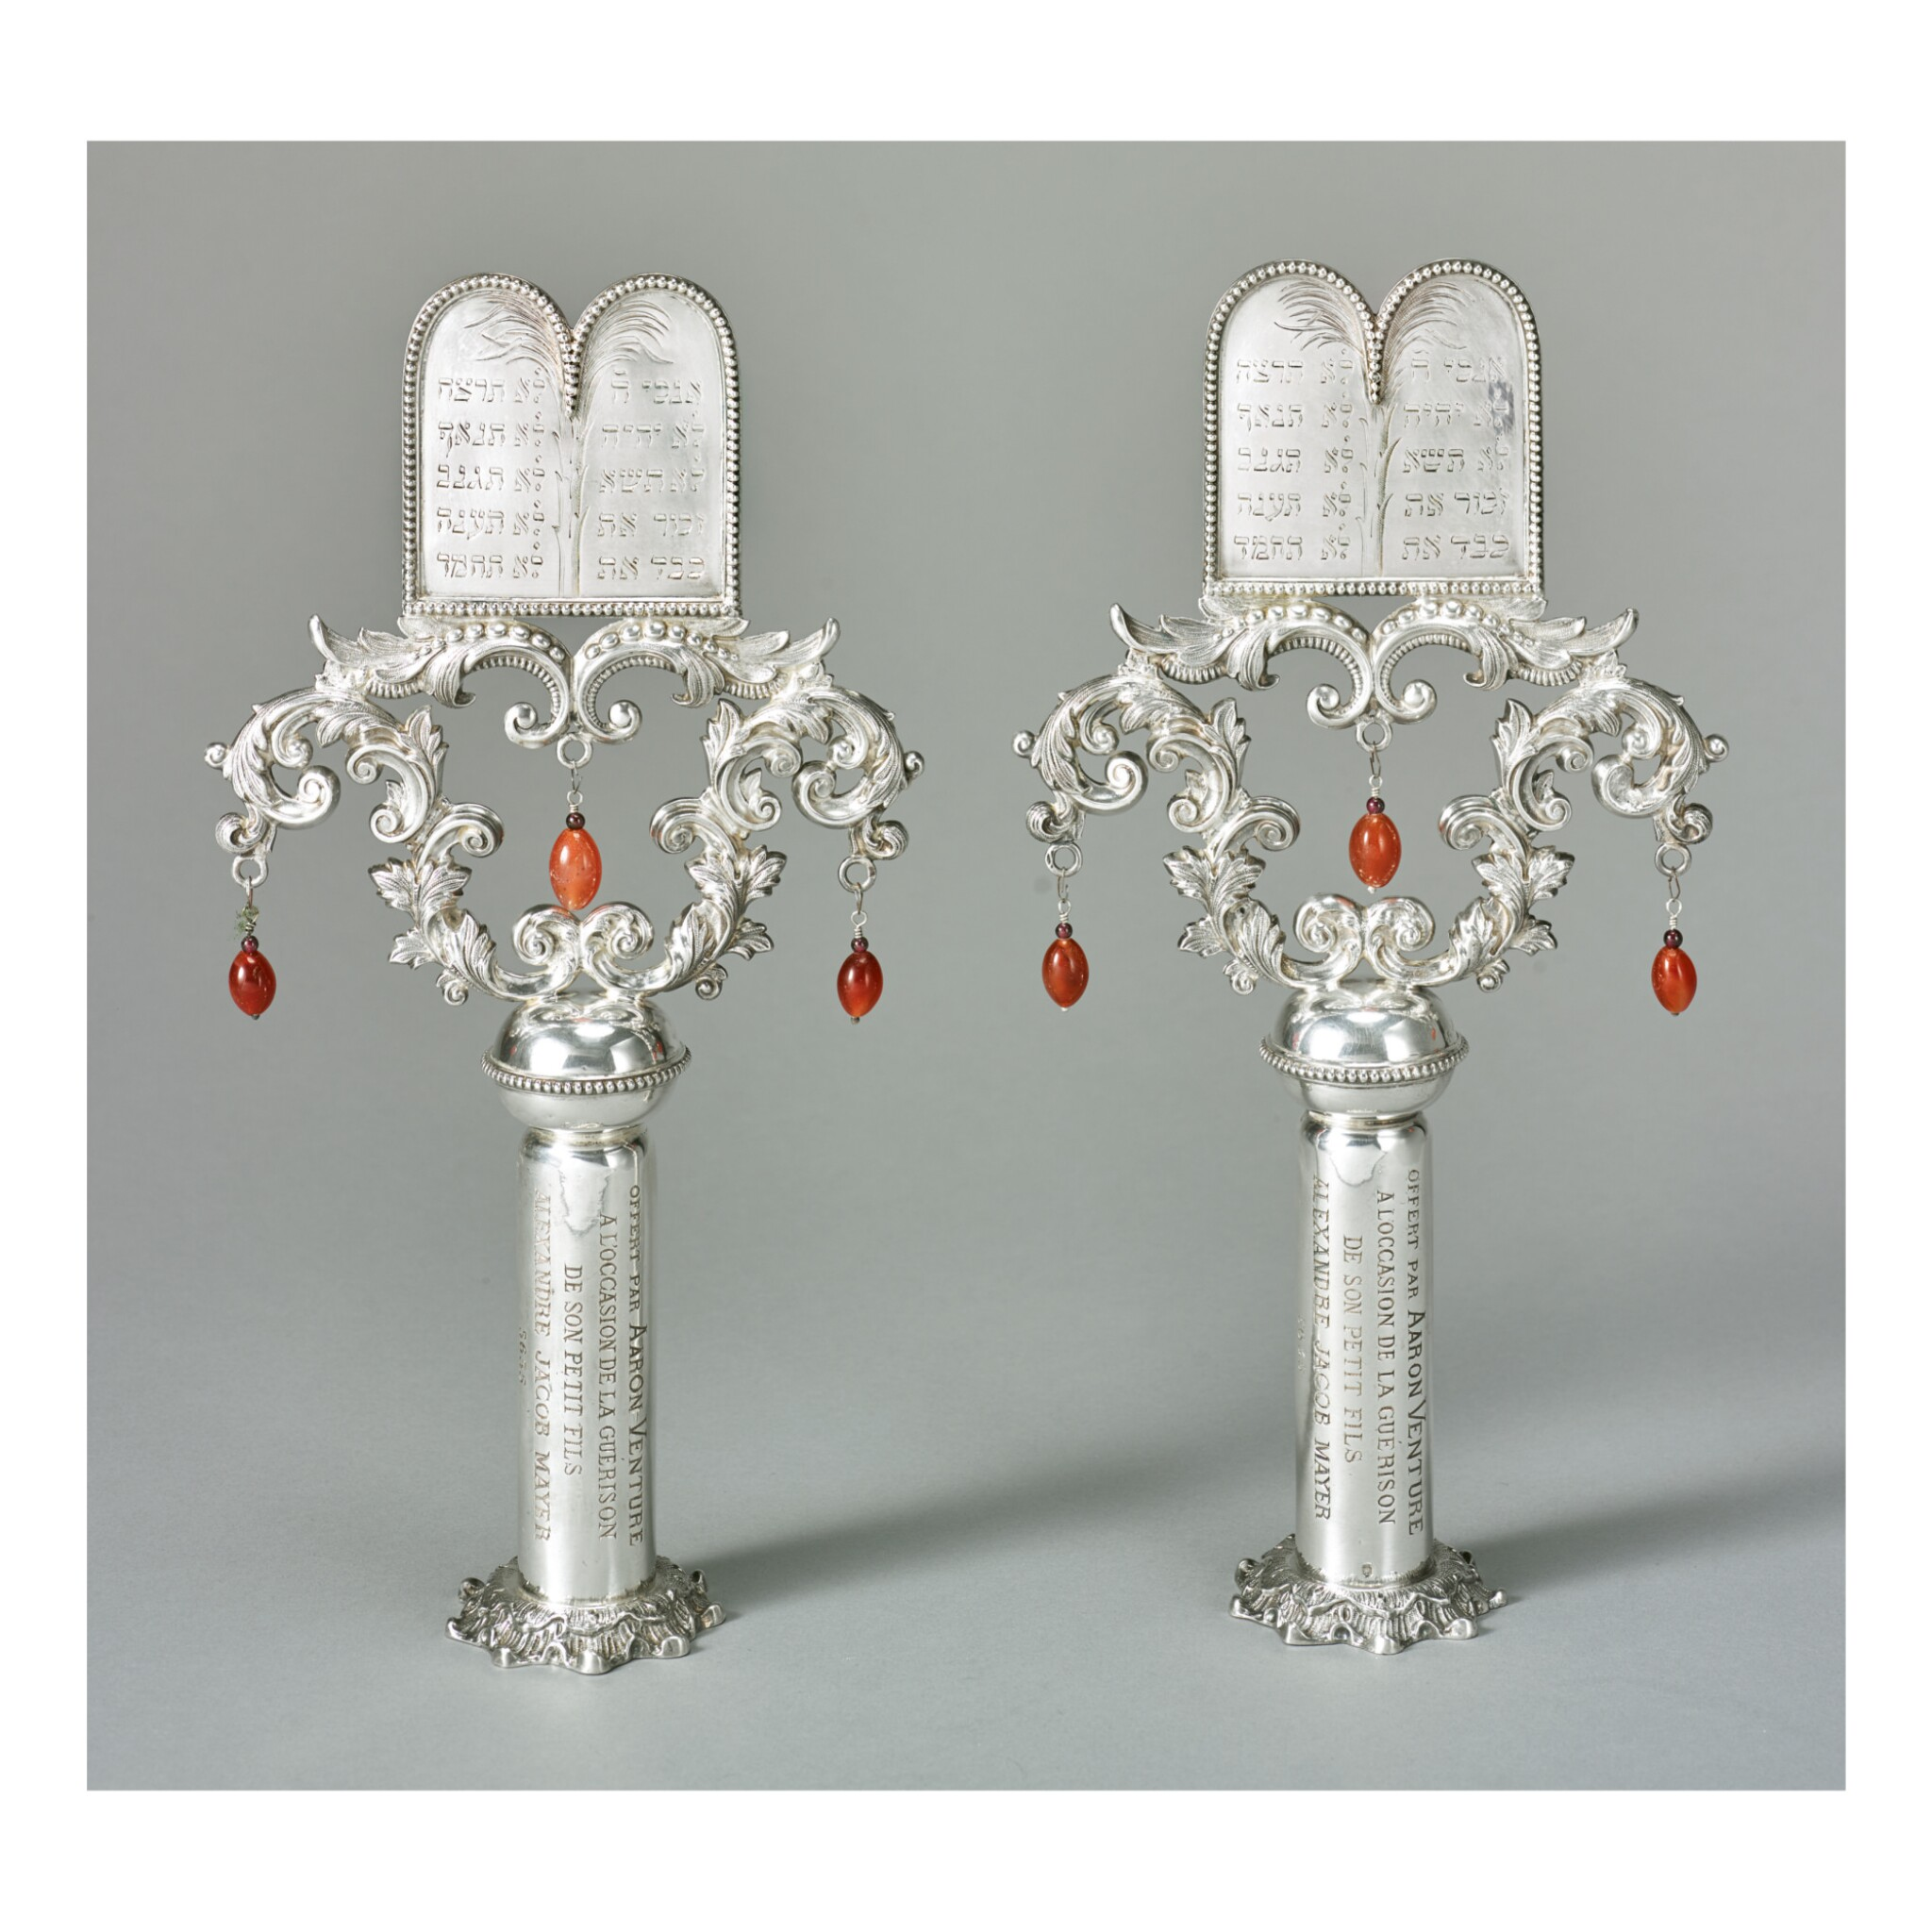 View full screen - View 1 of Lot 70. A PAIR OF FRENCH SILVER TORAH FINIALS, MAURICE MAYER, PARIS, CIRCA 1860.